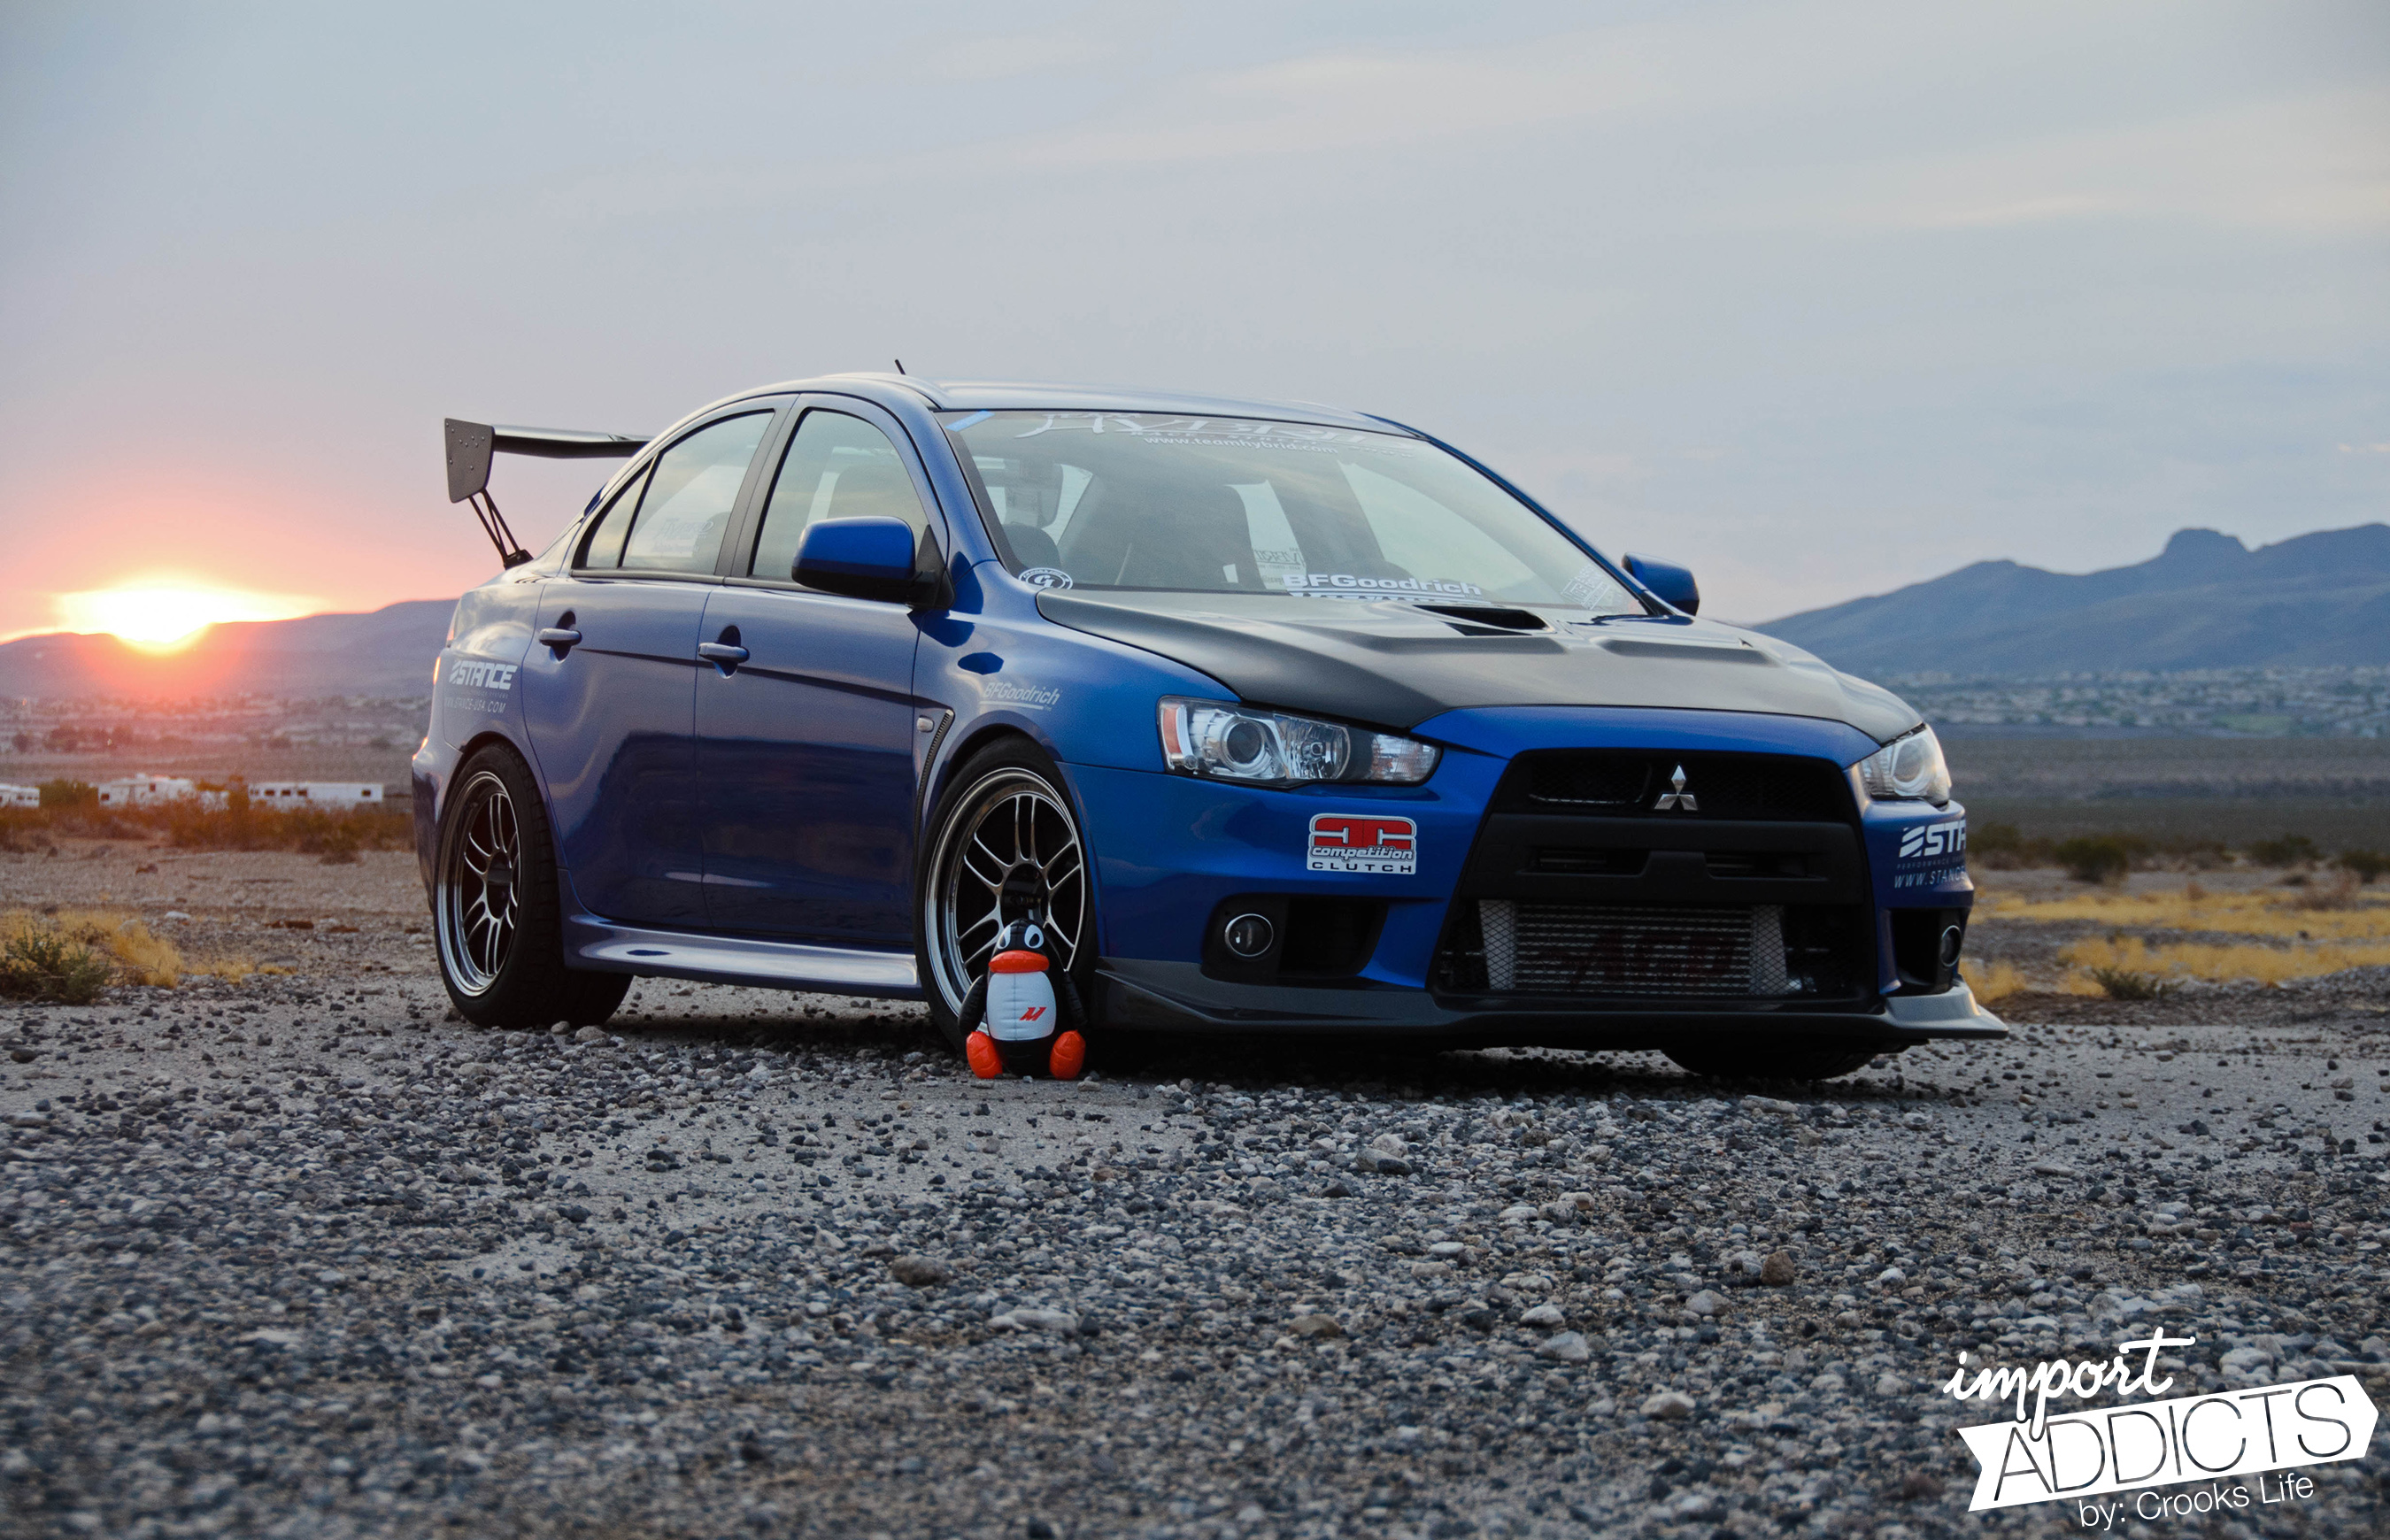 Mistress In Blue Evo X Feature Stance Suspension